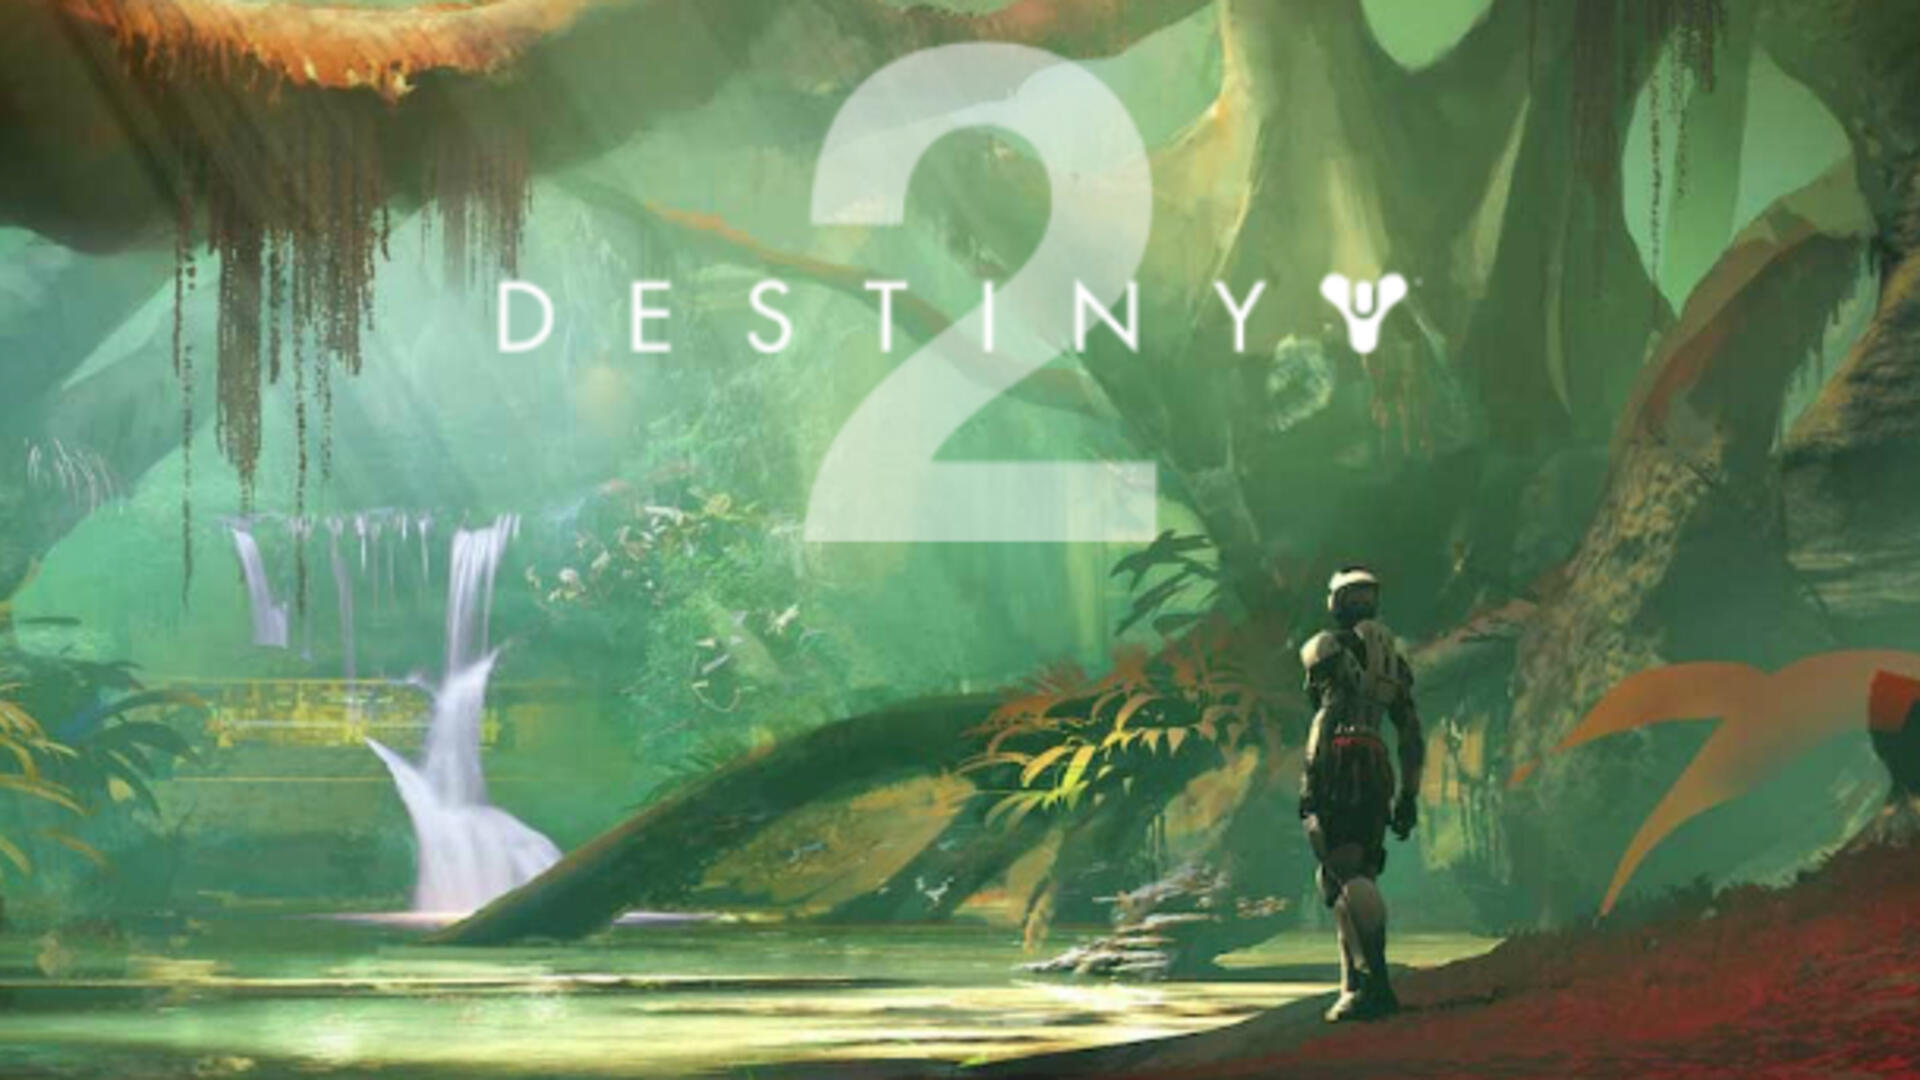 Destiny 2 Beta Players Find Glitches, New Enemies, And A Potential Lost Sector